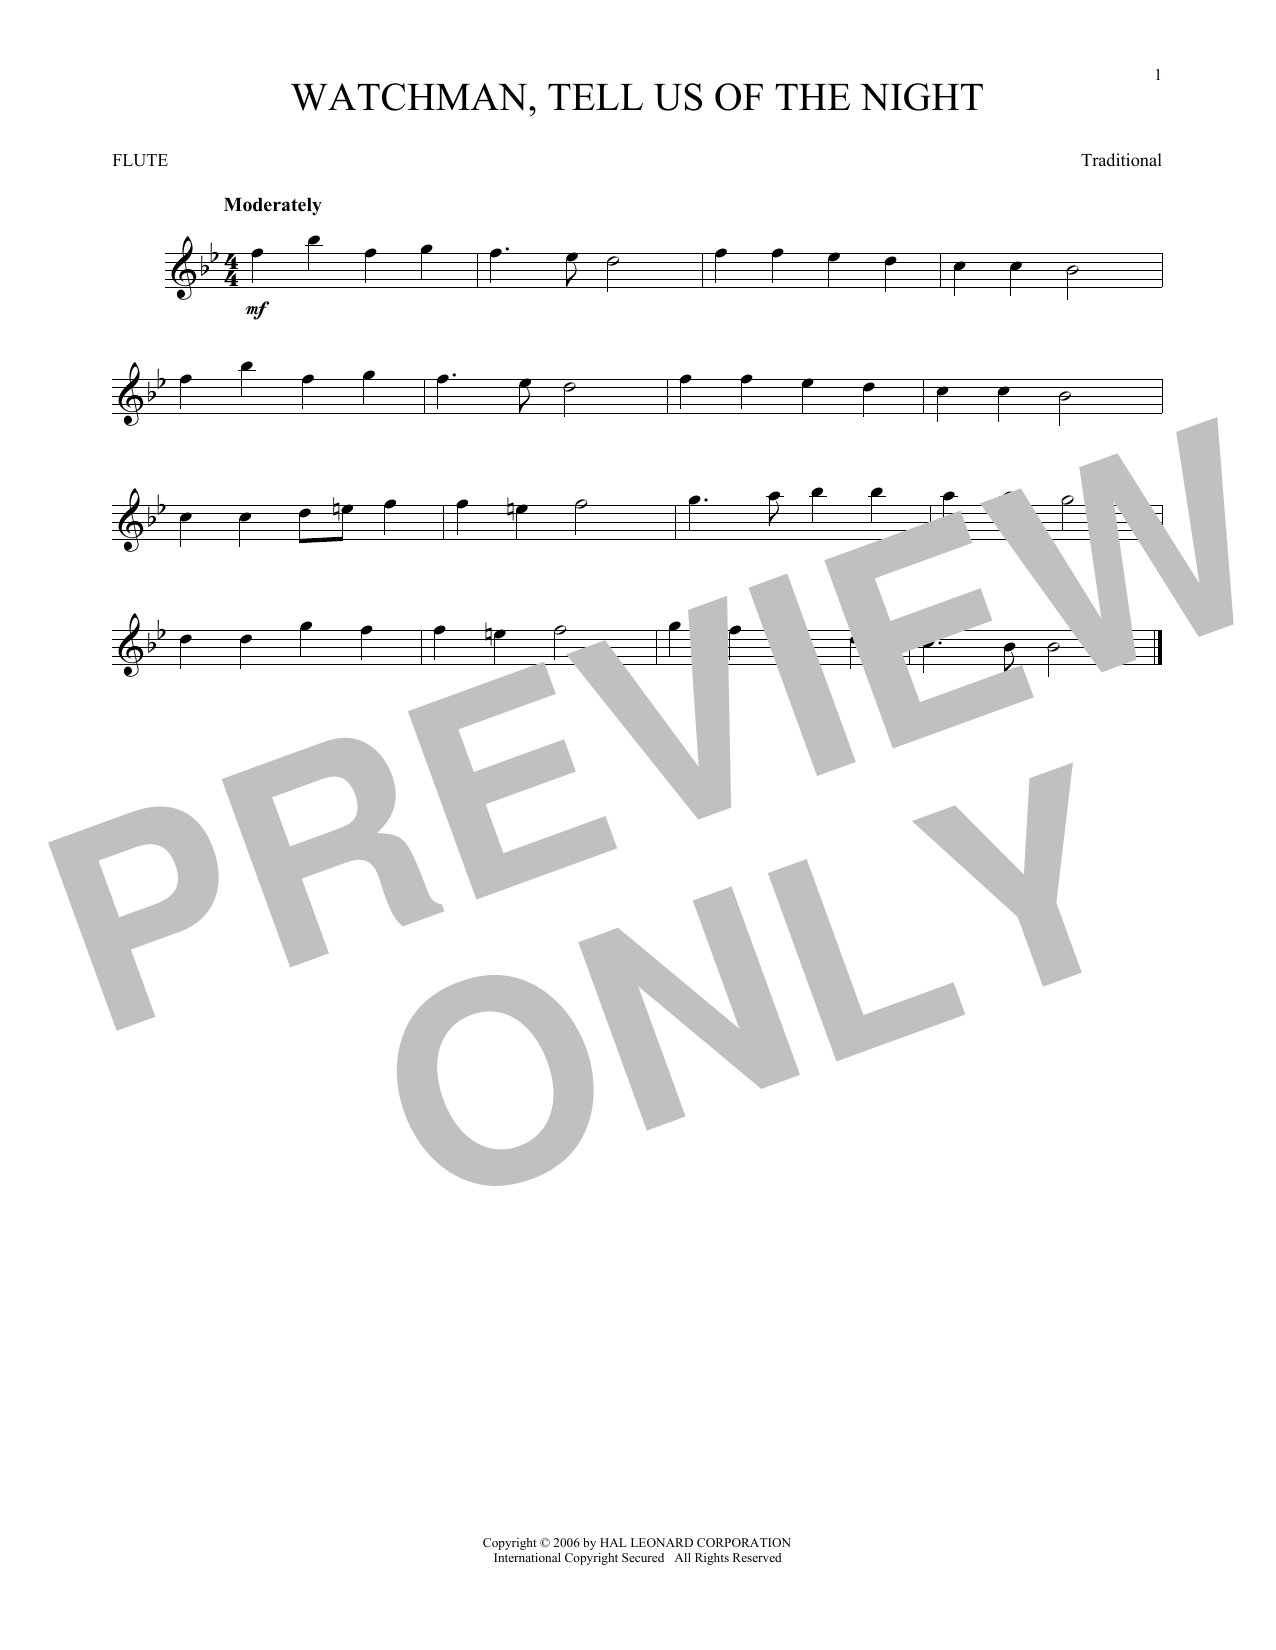 Partition flûte Watchman, Tell Us Of The Night de Traditional - Flute traversiere